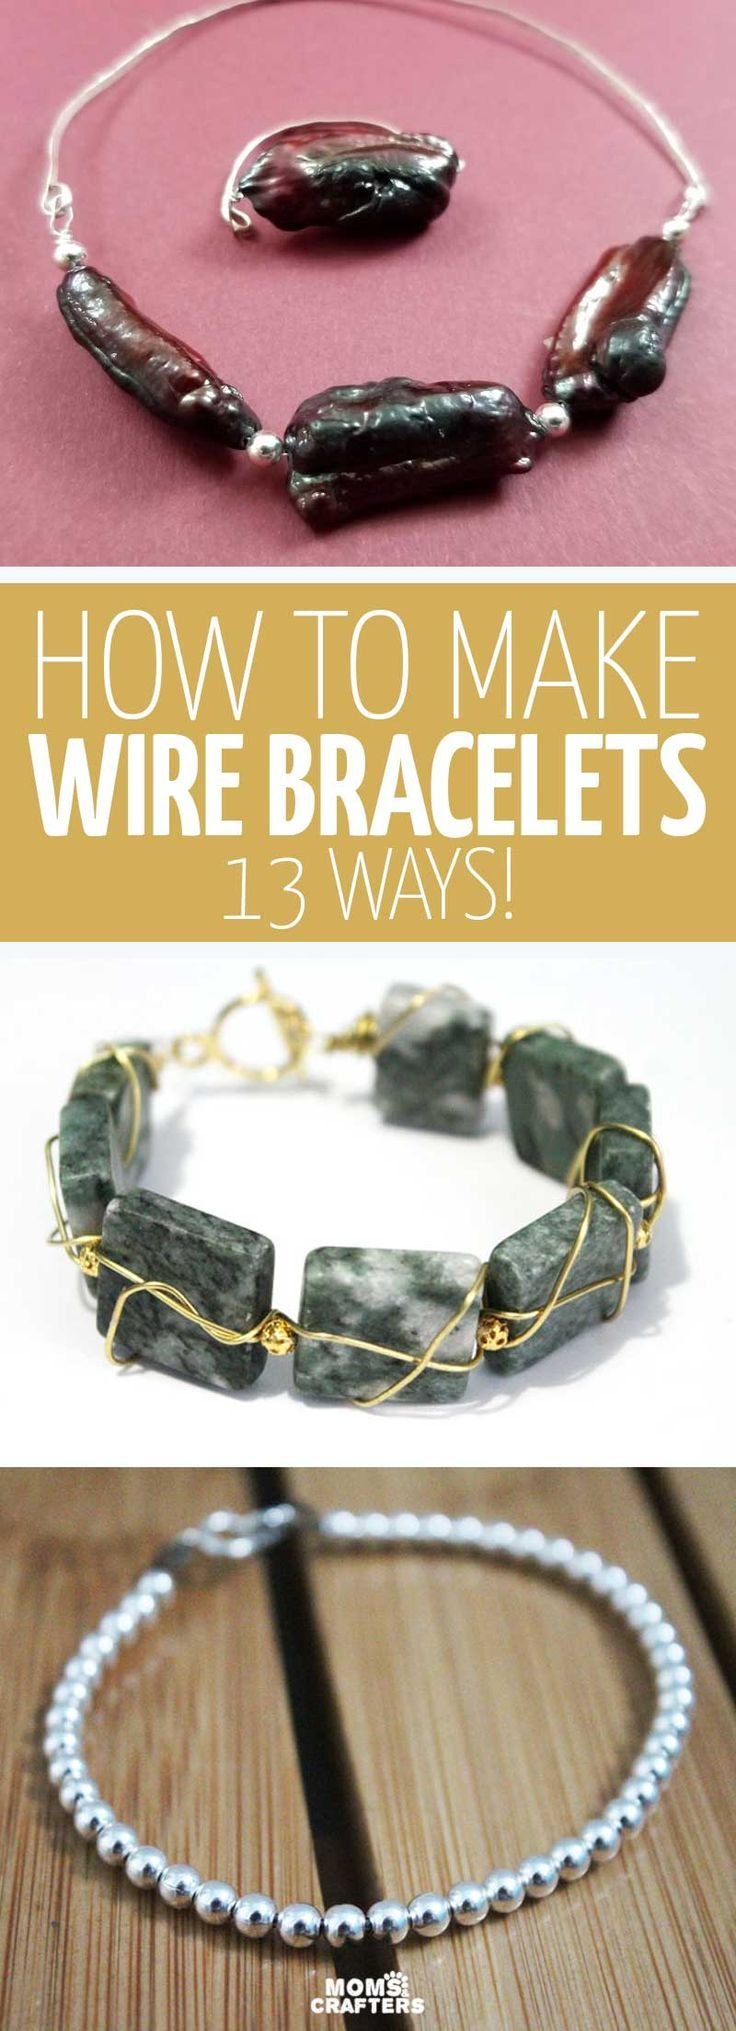 How to Make Wire Bracelets - wire wrapping, bangles, memory wire & more! -